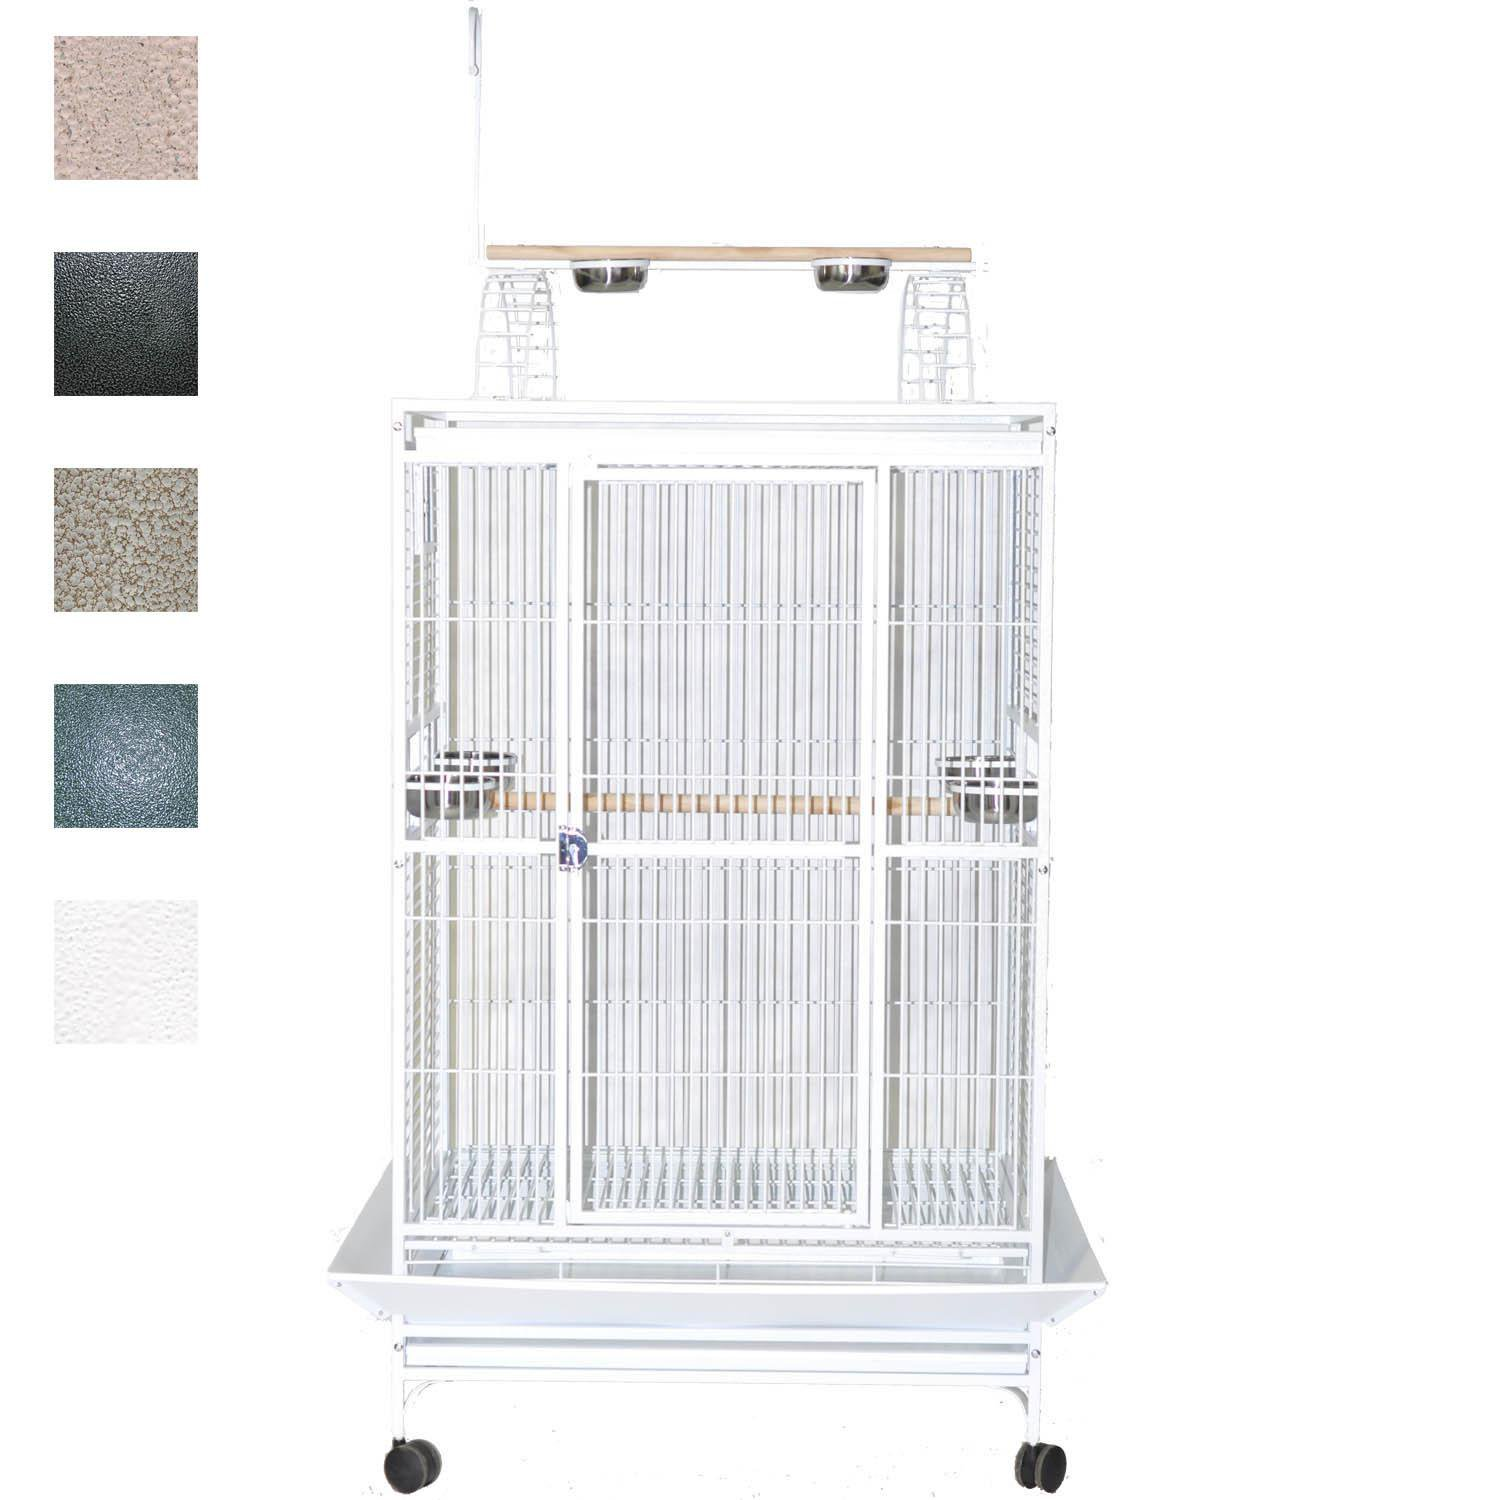 AE Cage Company 40 X 30 Play Top Bird Cage in Stainless Steel Silver